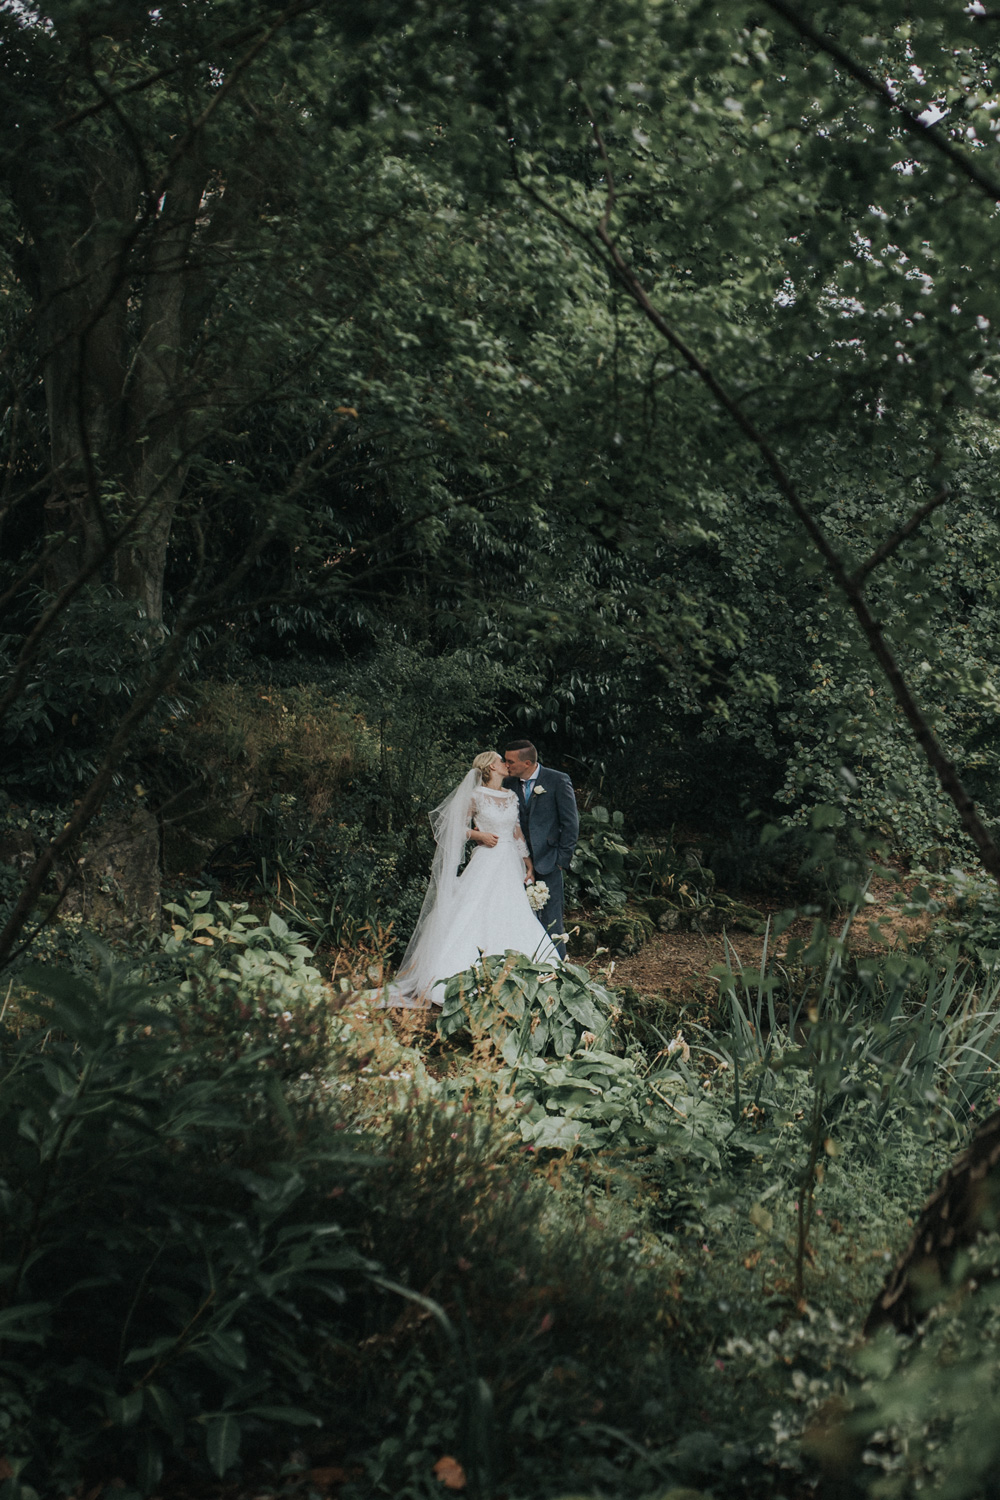 Weddings at St Augustines Priory Kent Wedding Photographer - Chris Deller Photography